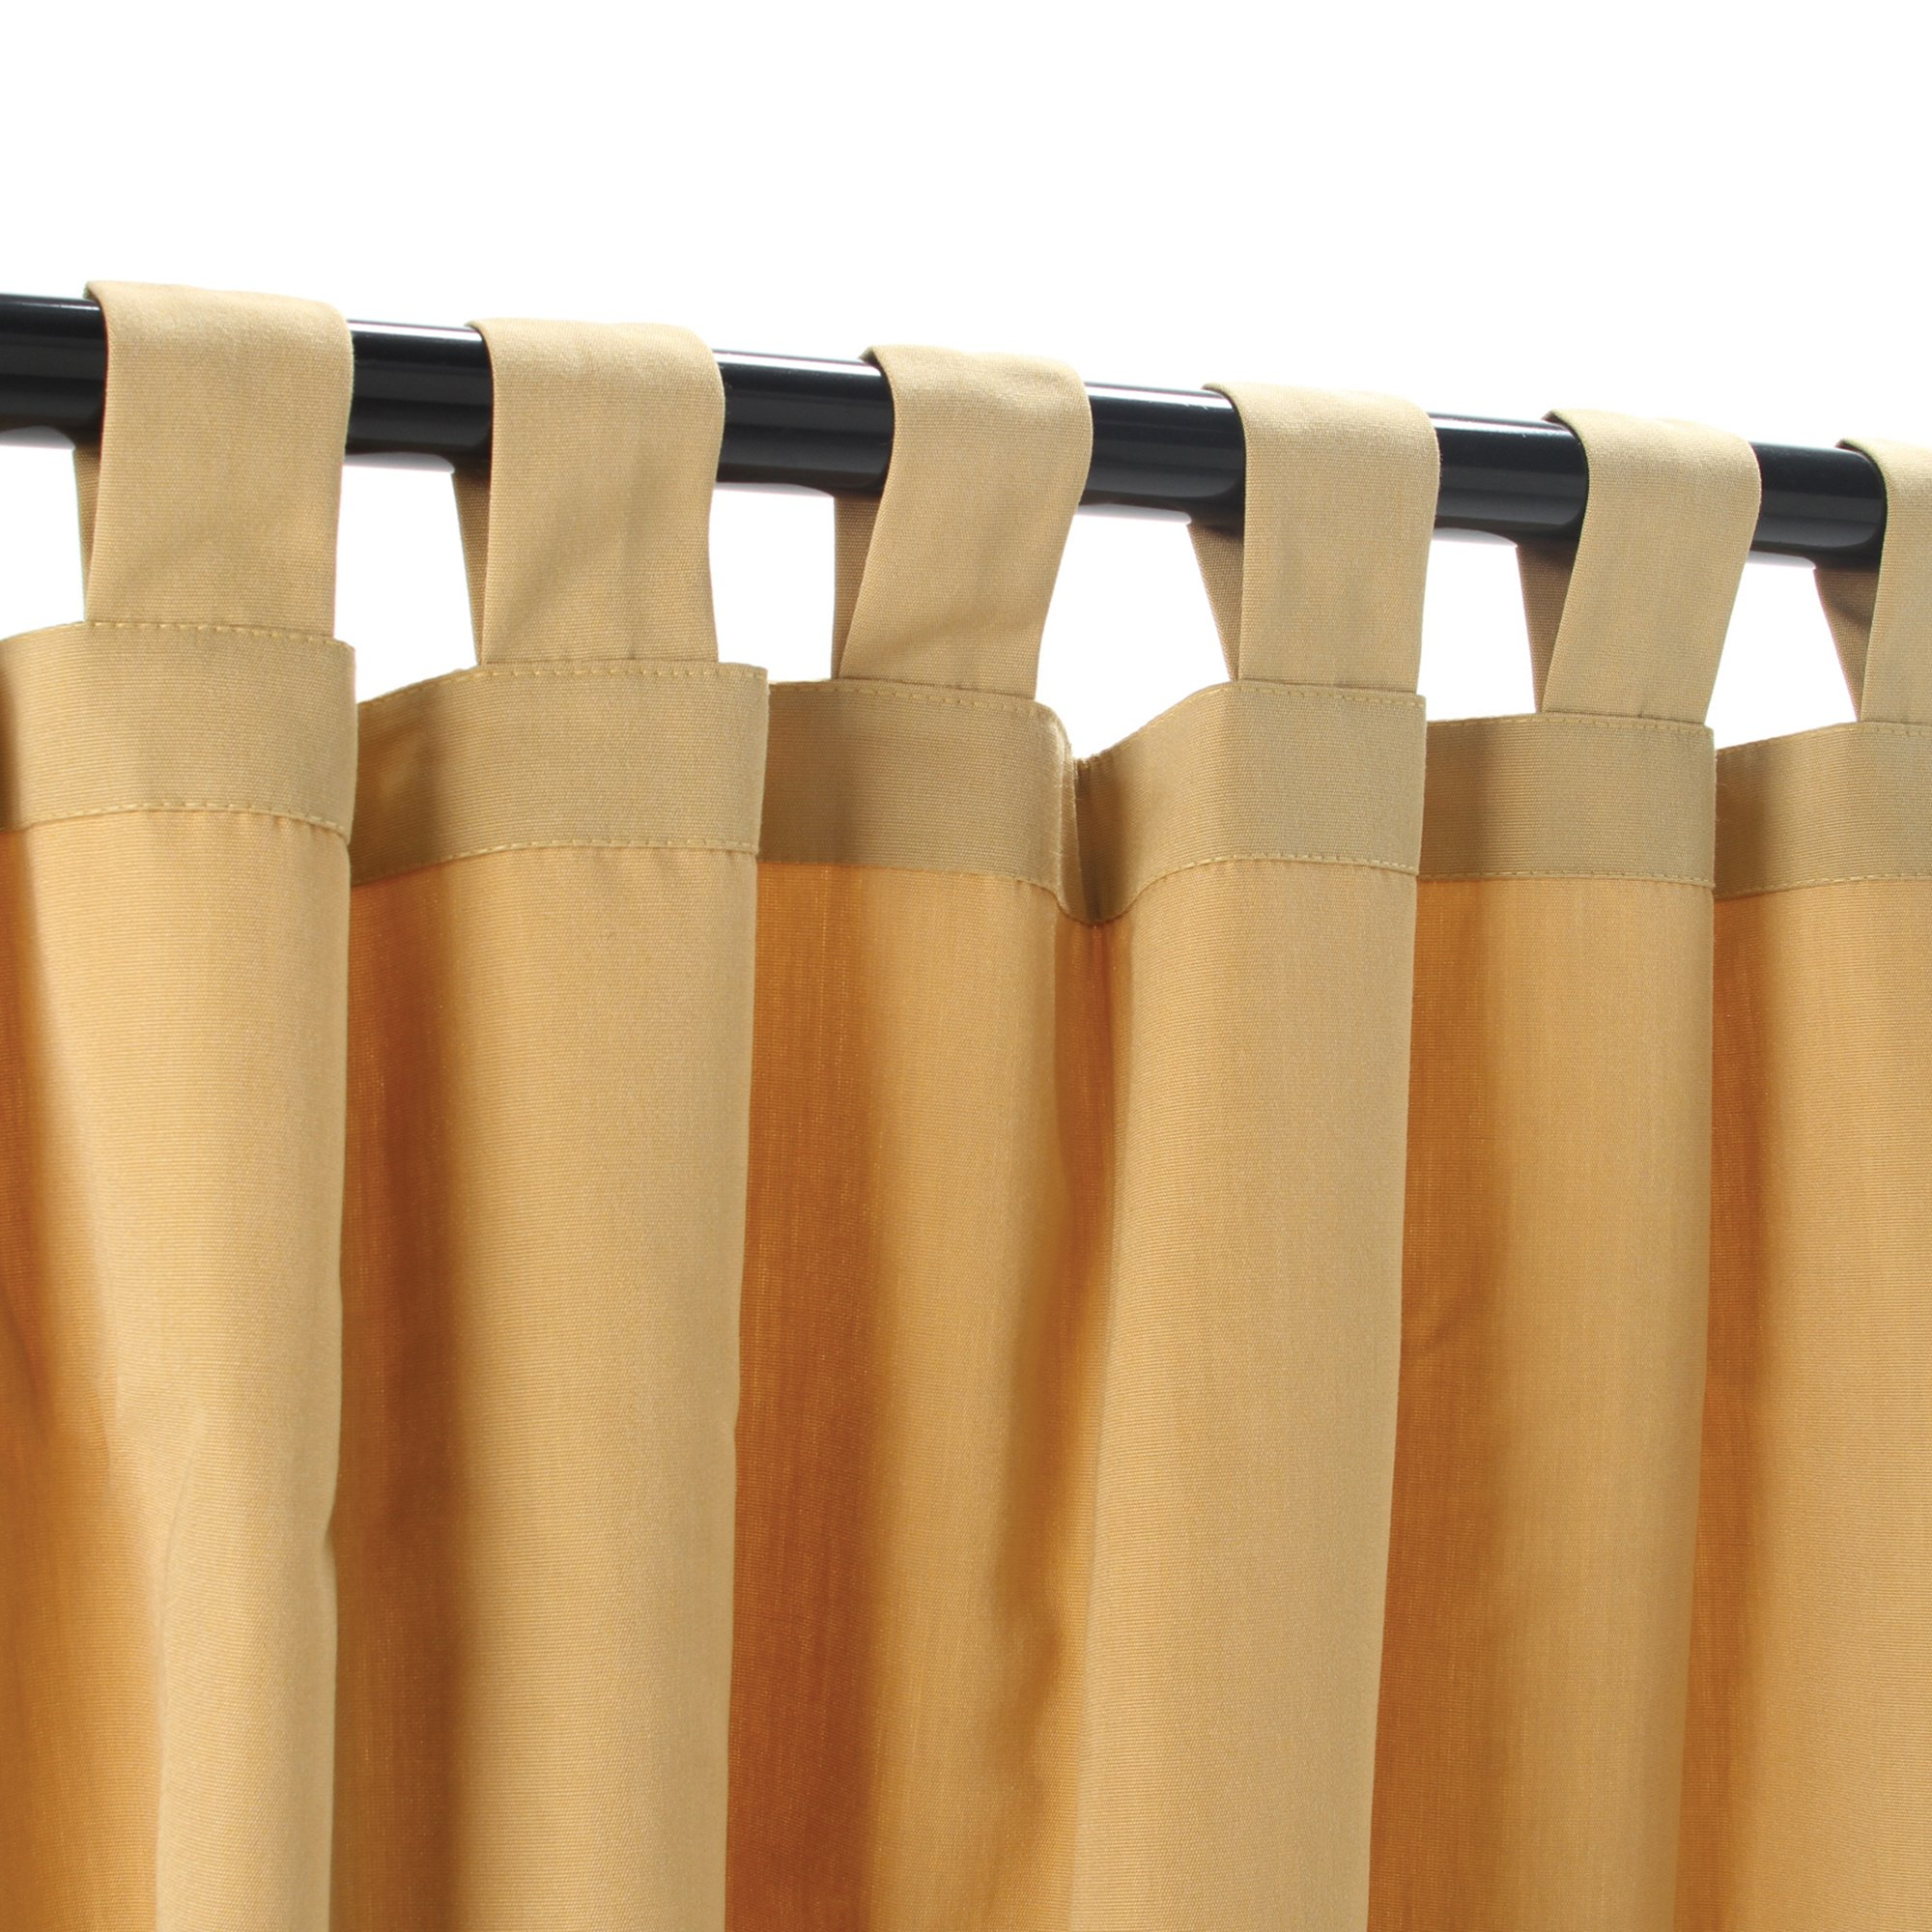 Sunbrella Outdoor Curtain Panel, Tab Top, 50 by 108 Inch, Wheat and Sizes Includes Custom Storage Bag; Perfect for Your Patio, Porch, Gazebo, Pergola, and More